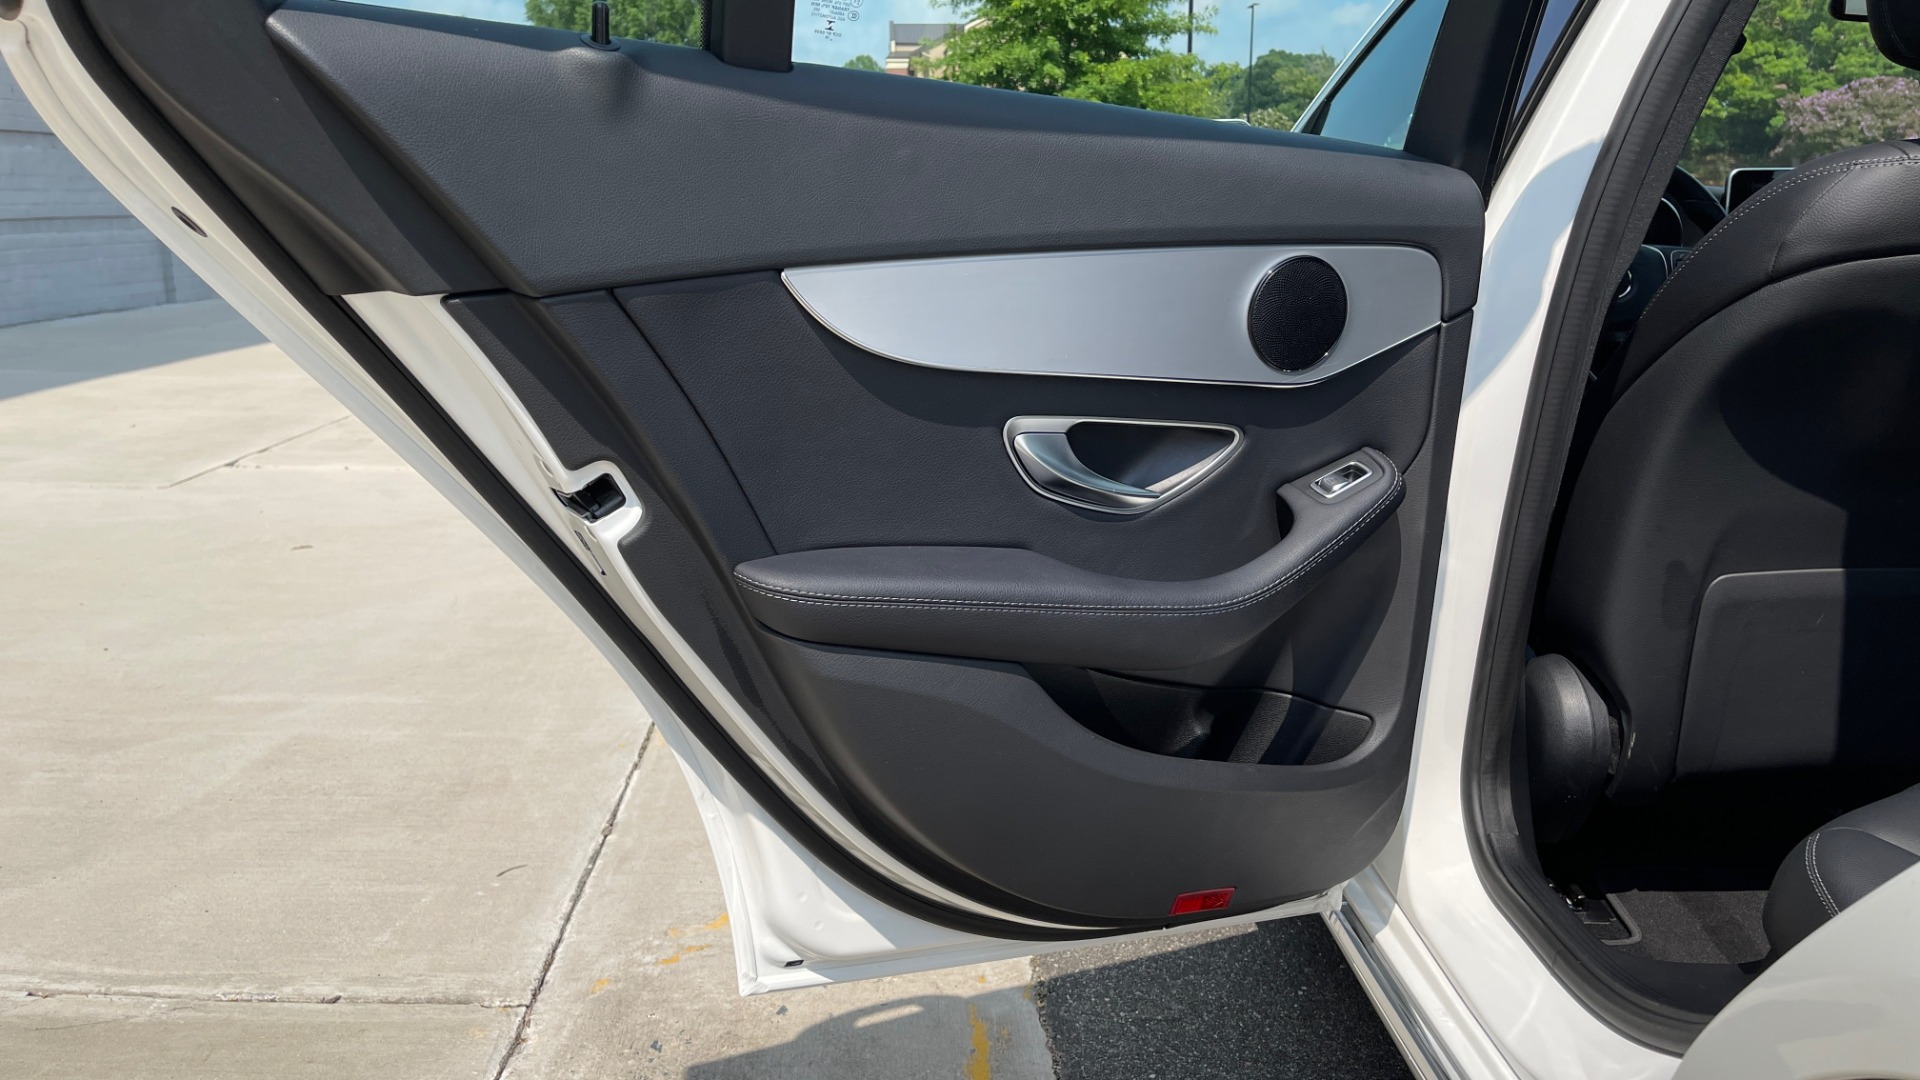 Used 2018 Mercedes-Benz C-CLASS C 300 / 2.0L / RWD / SUNROOF / APPLE~ANDROID / REARVIEW for sale $29,995 at Formula Imports in Charlotte NC 28227 45